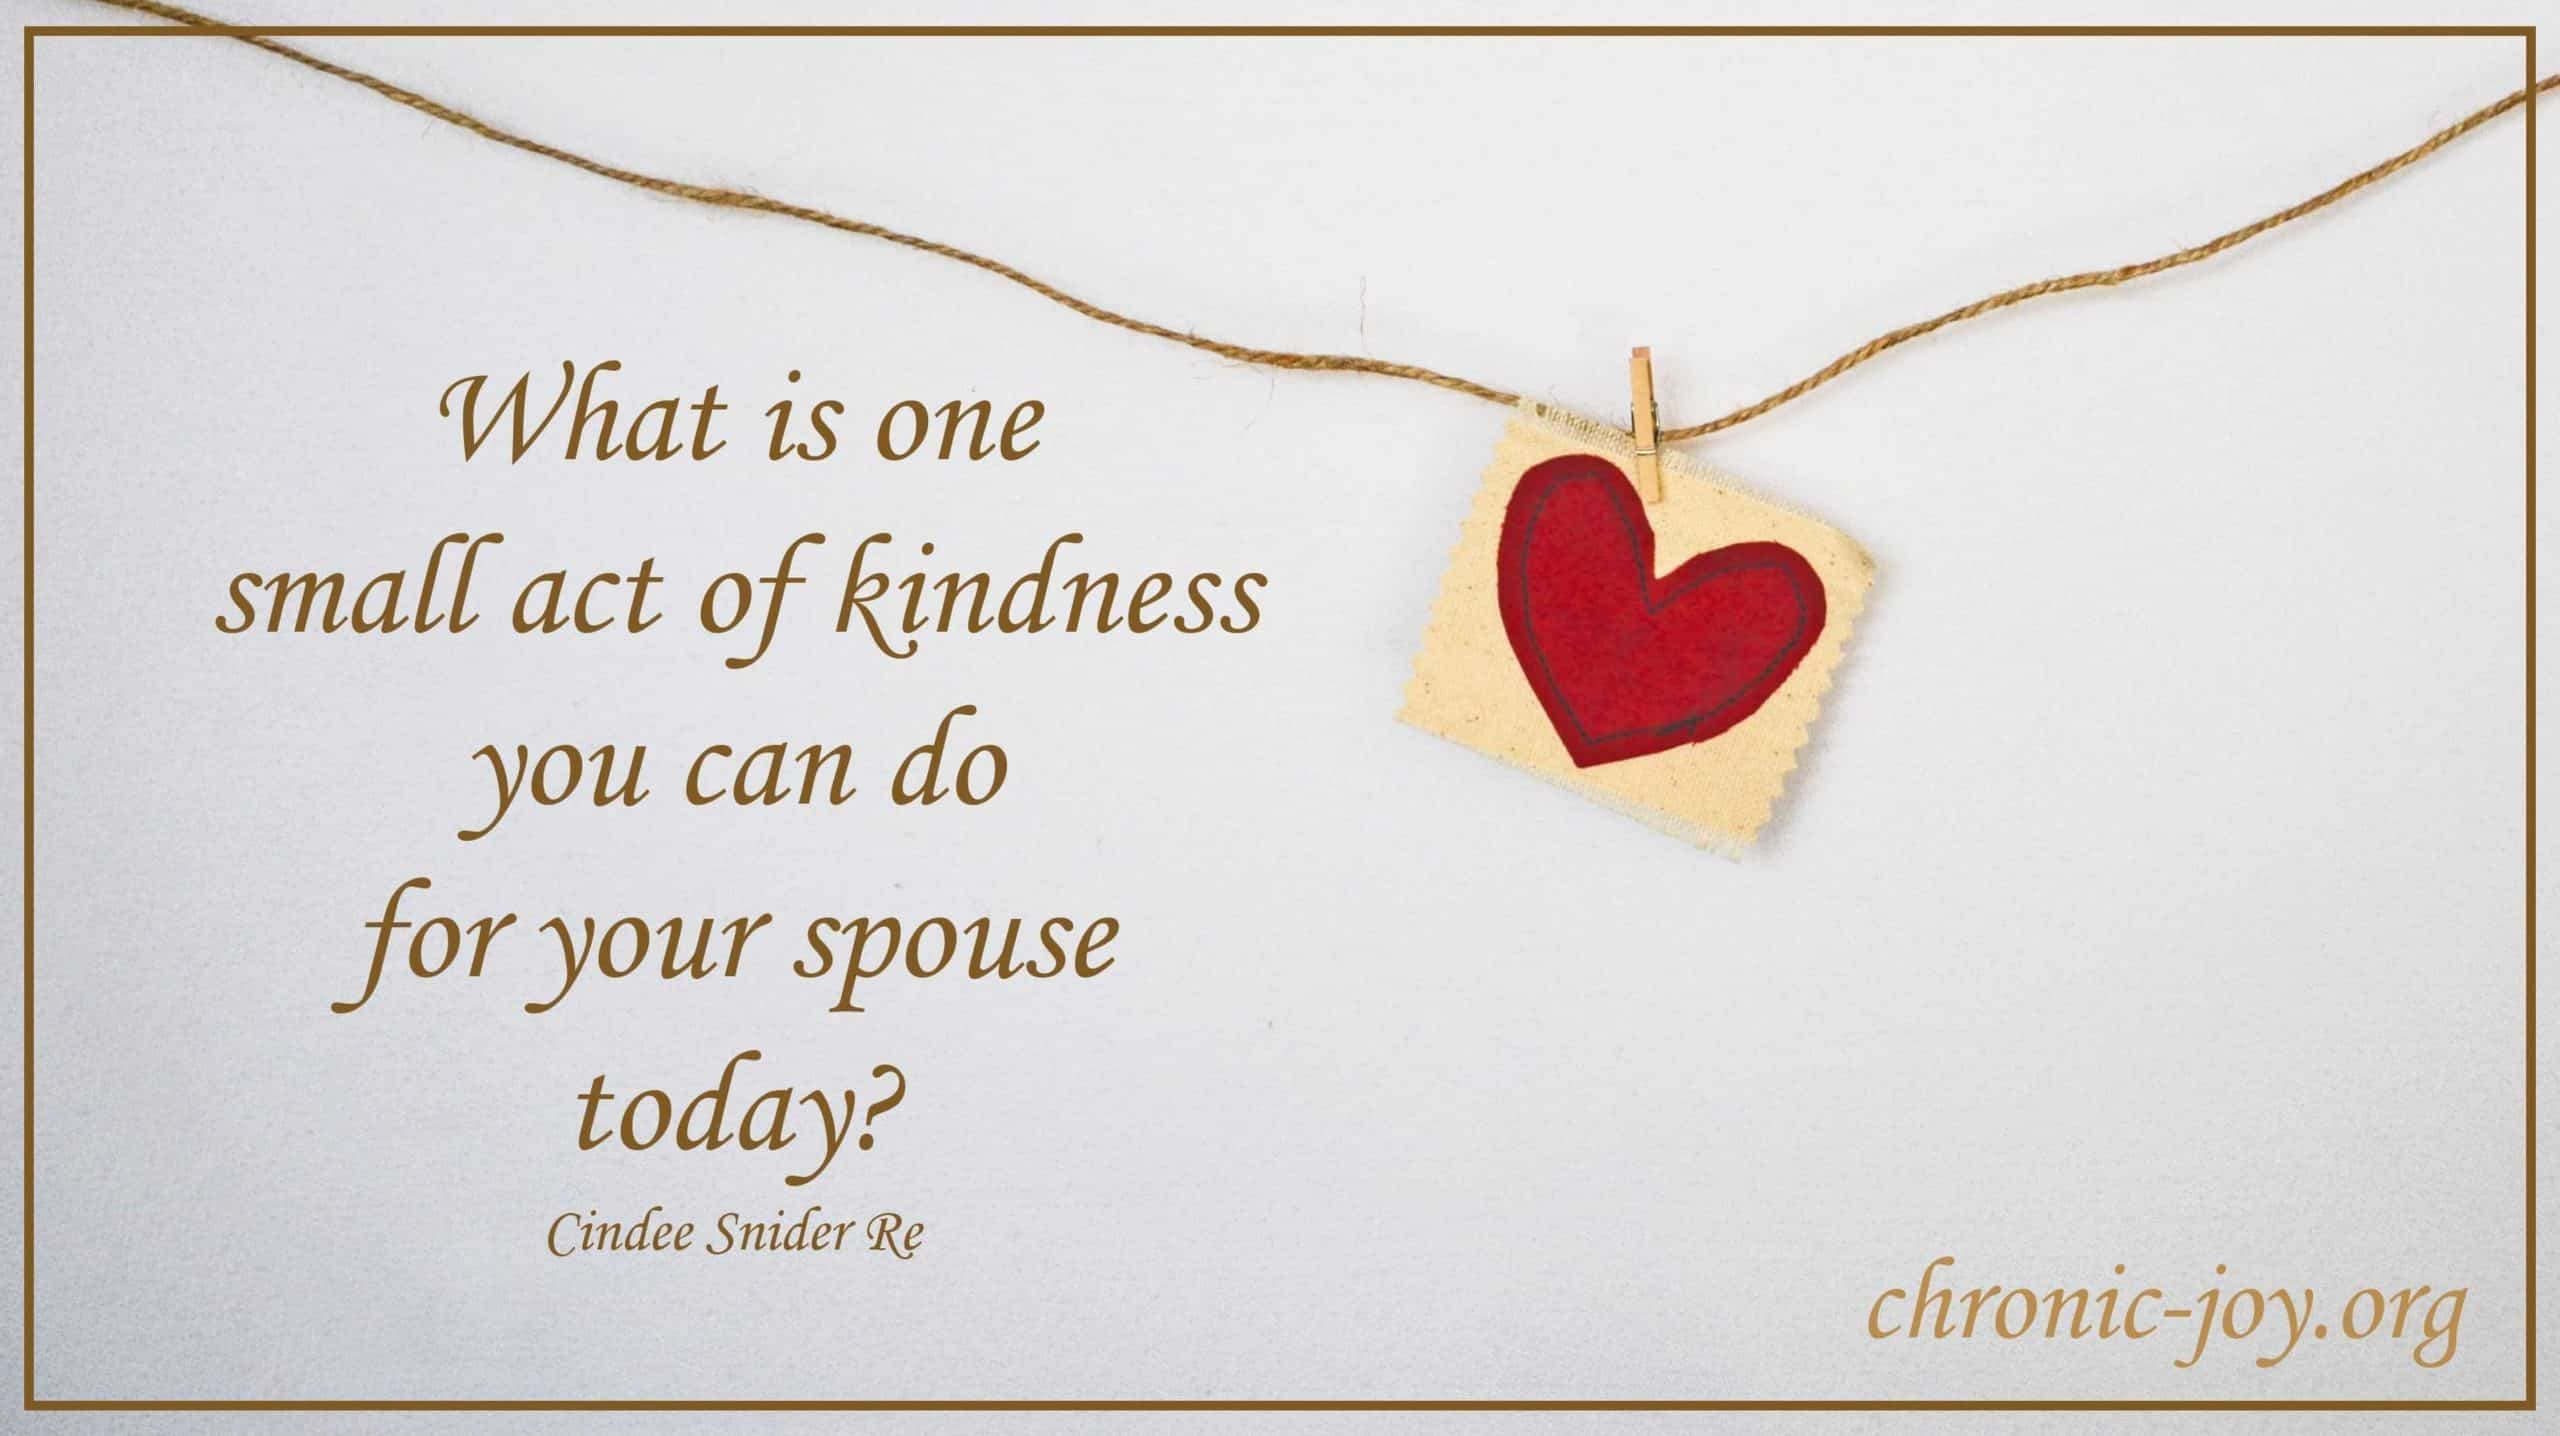 What is one act of kindness...